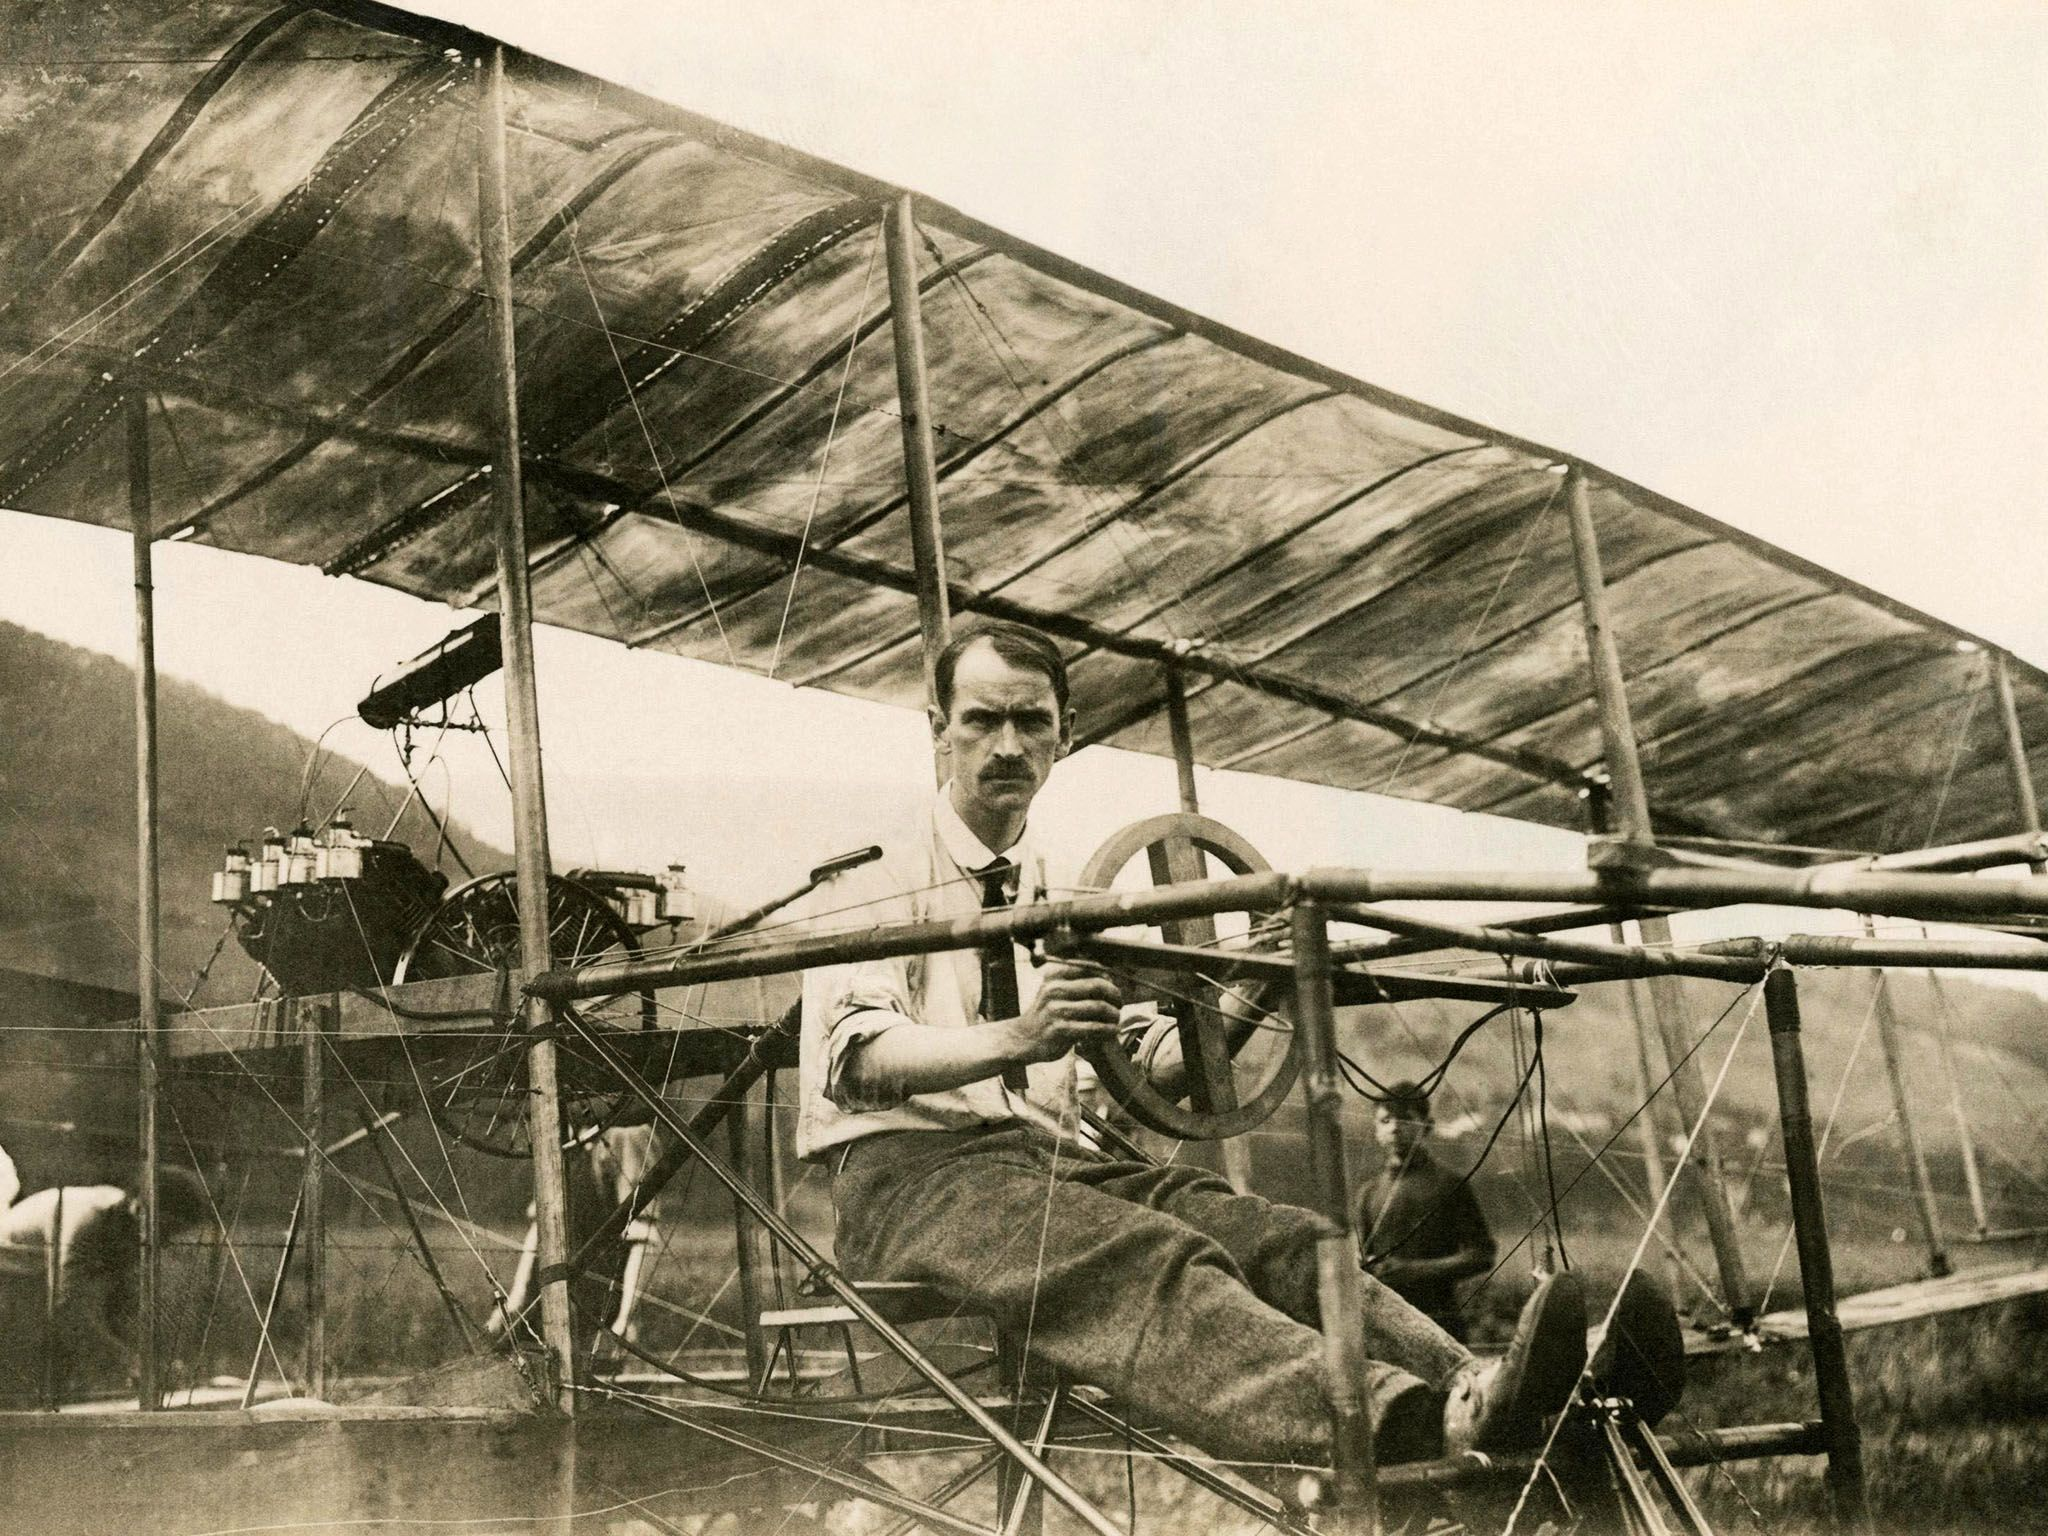 Glenn Curtiss in his Biplane, July 4, 1908. This image is from American Genius. [Photo of the day - اگوست 2015]